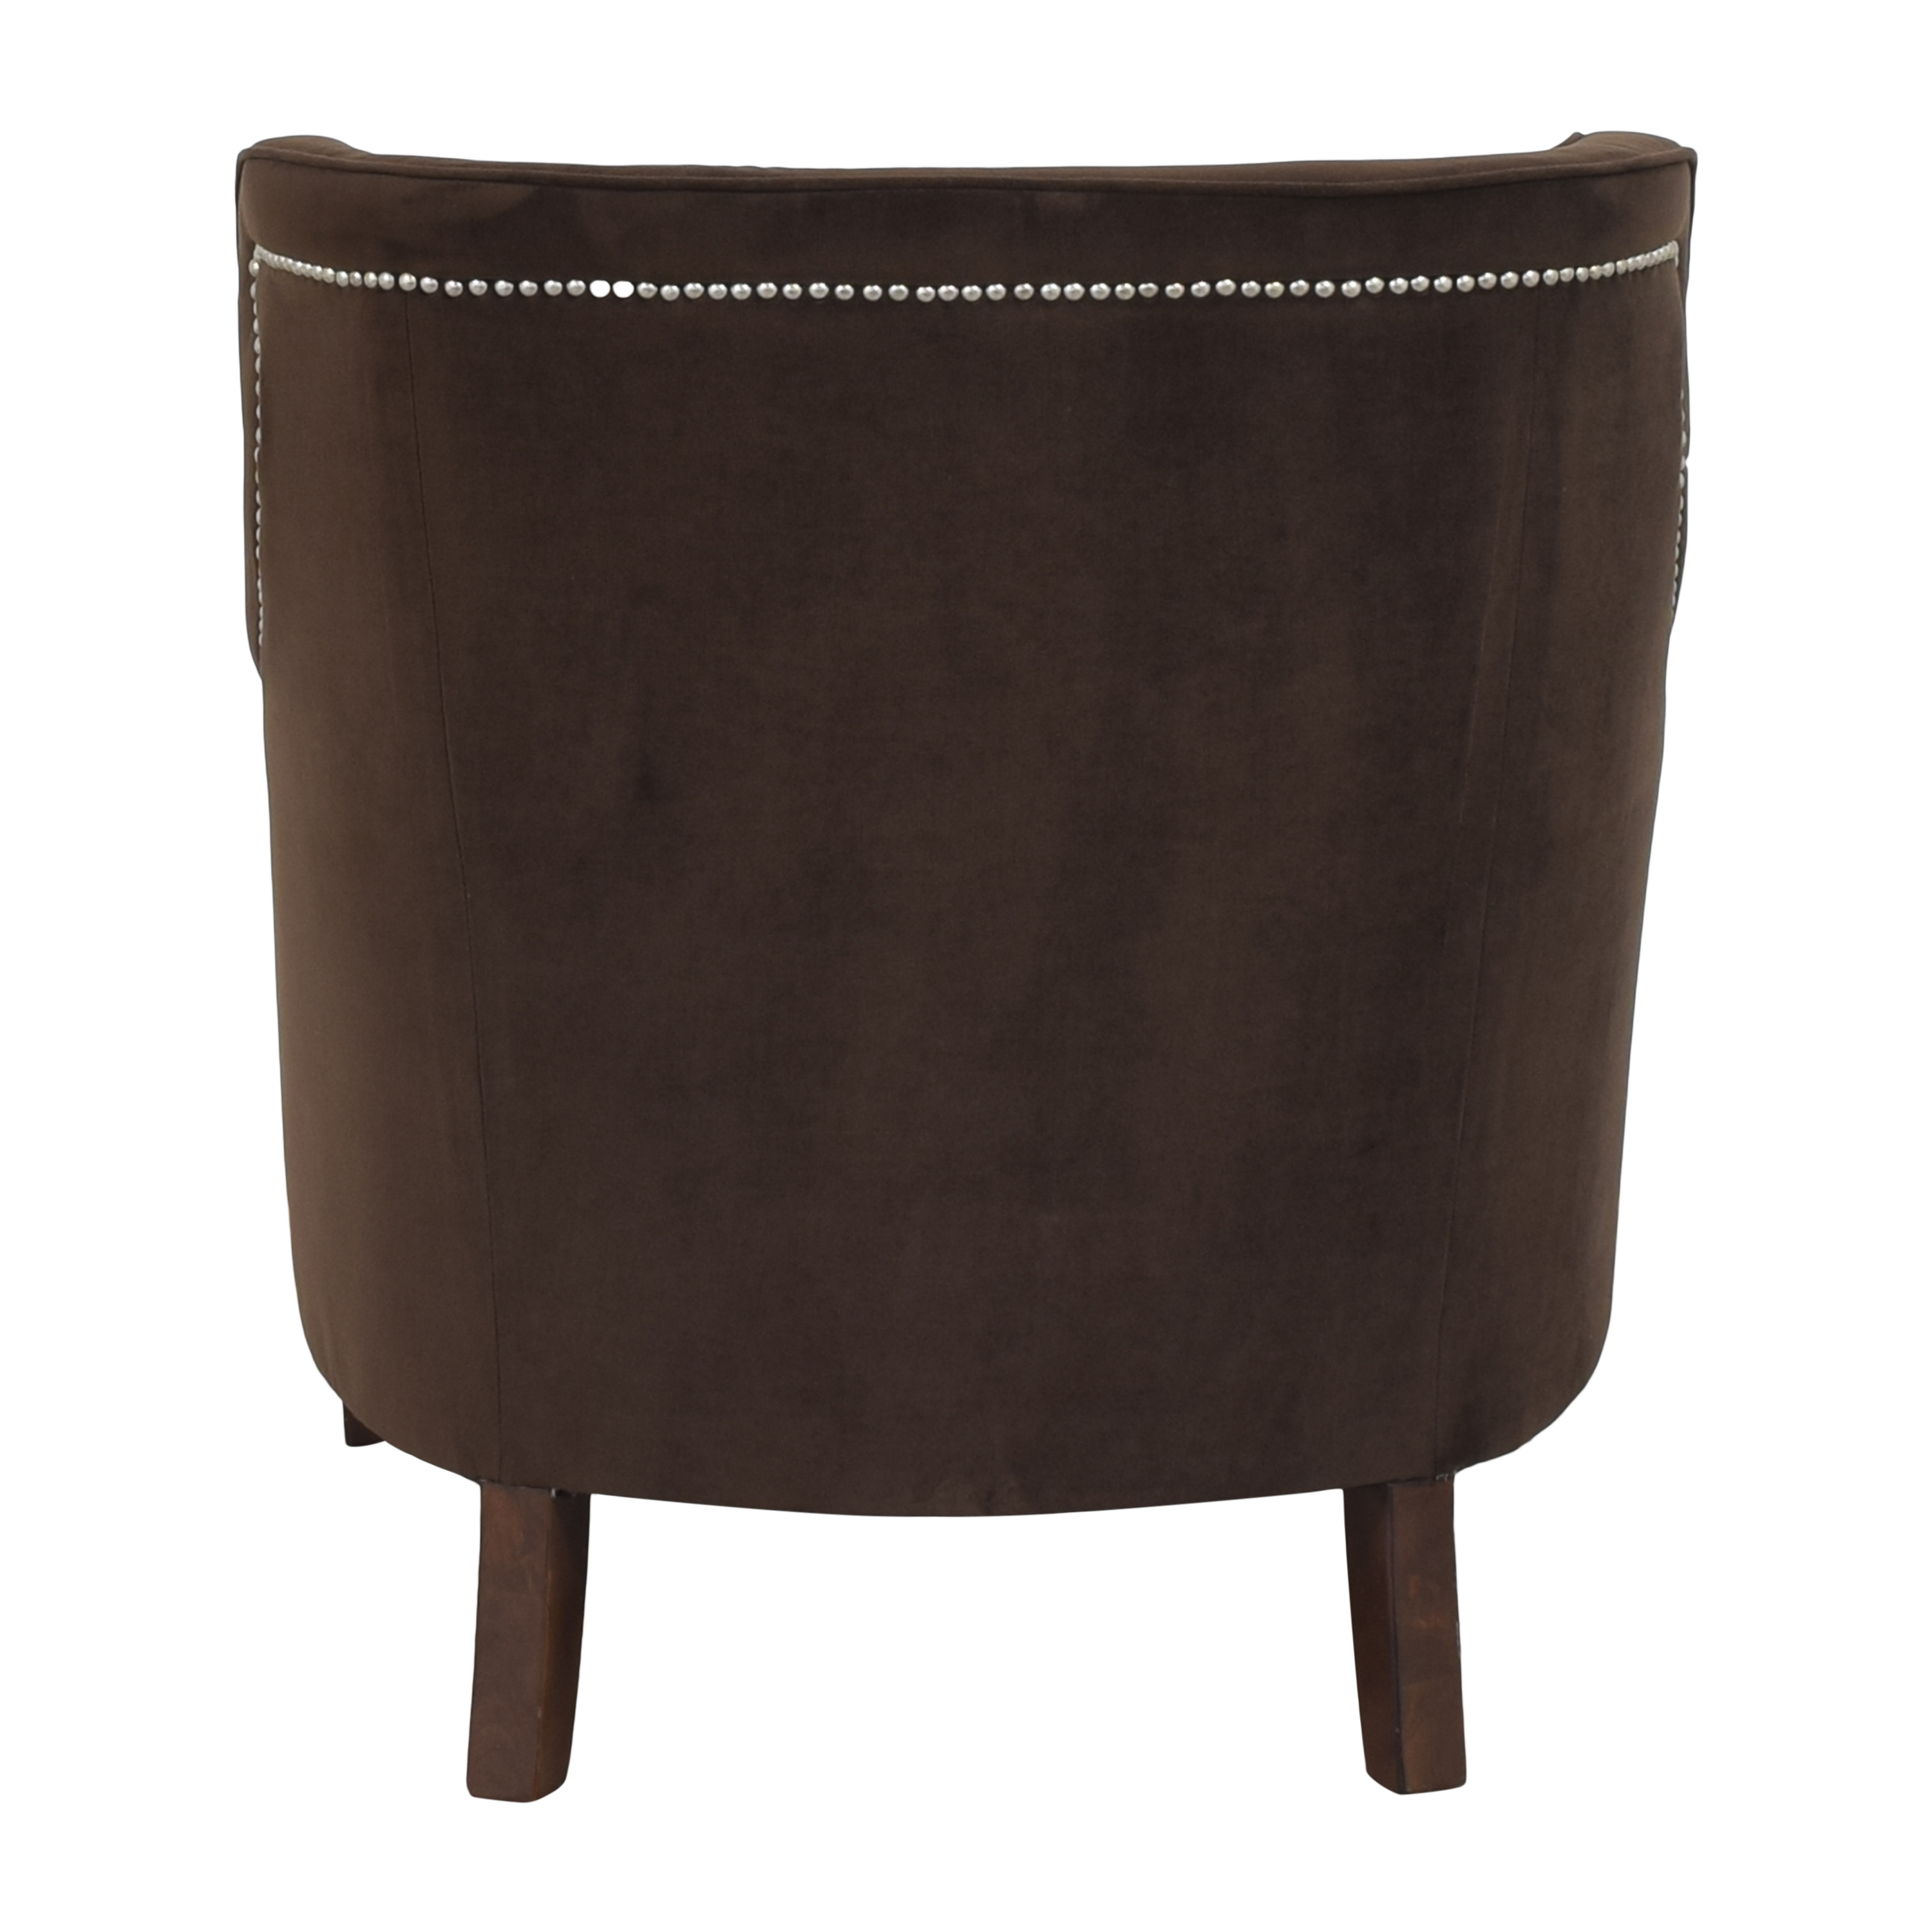 Barrel Accent Chair for sale